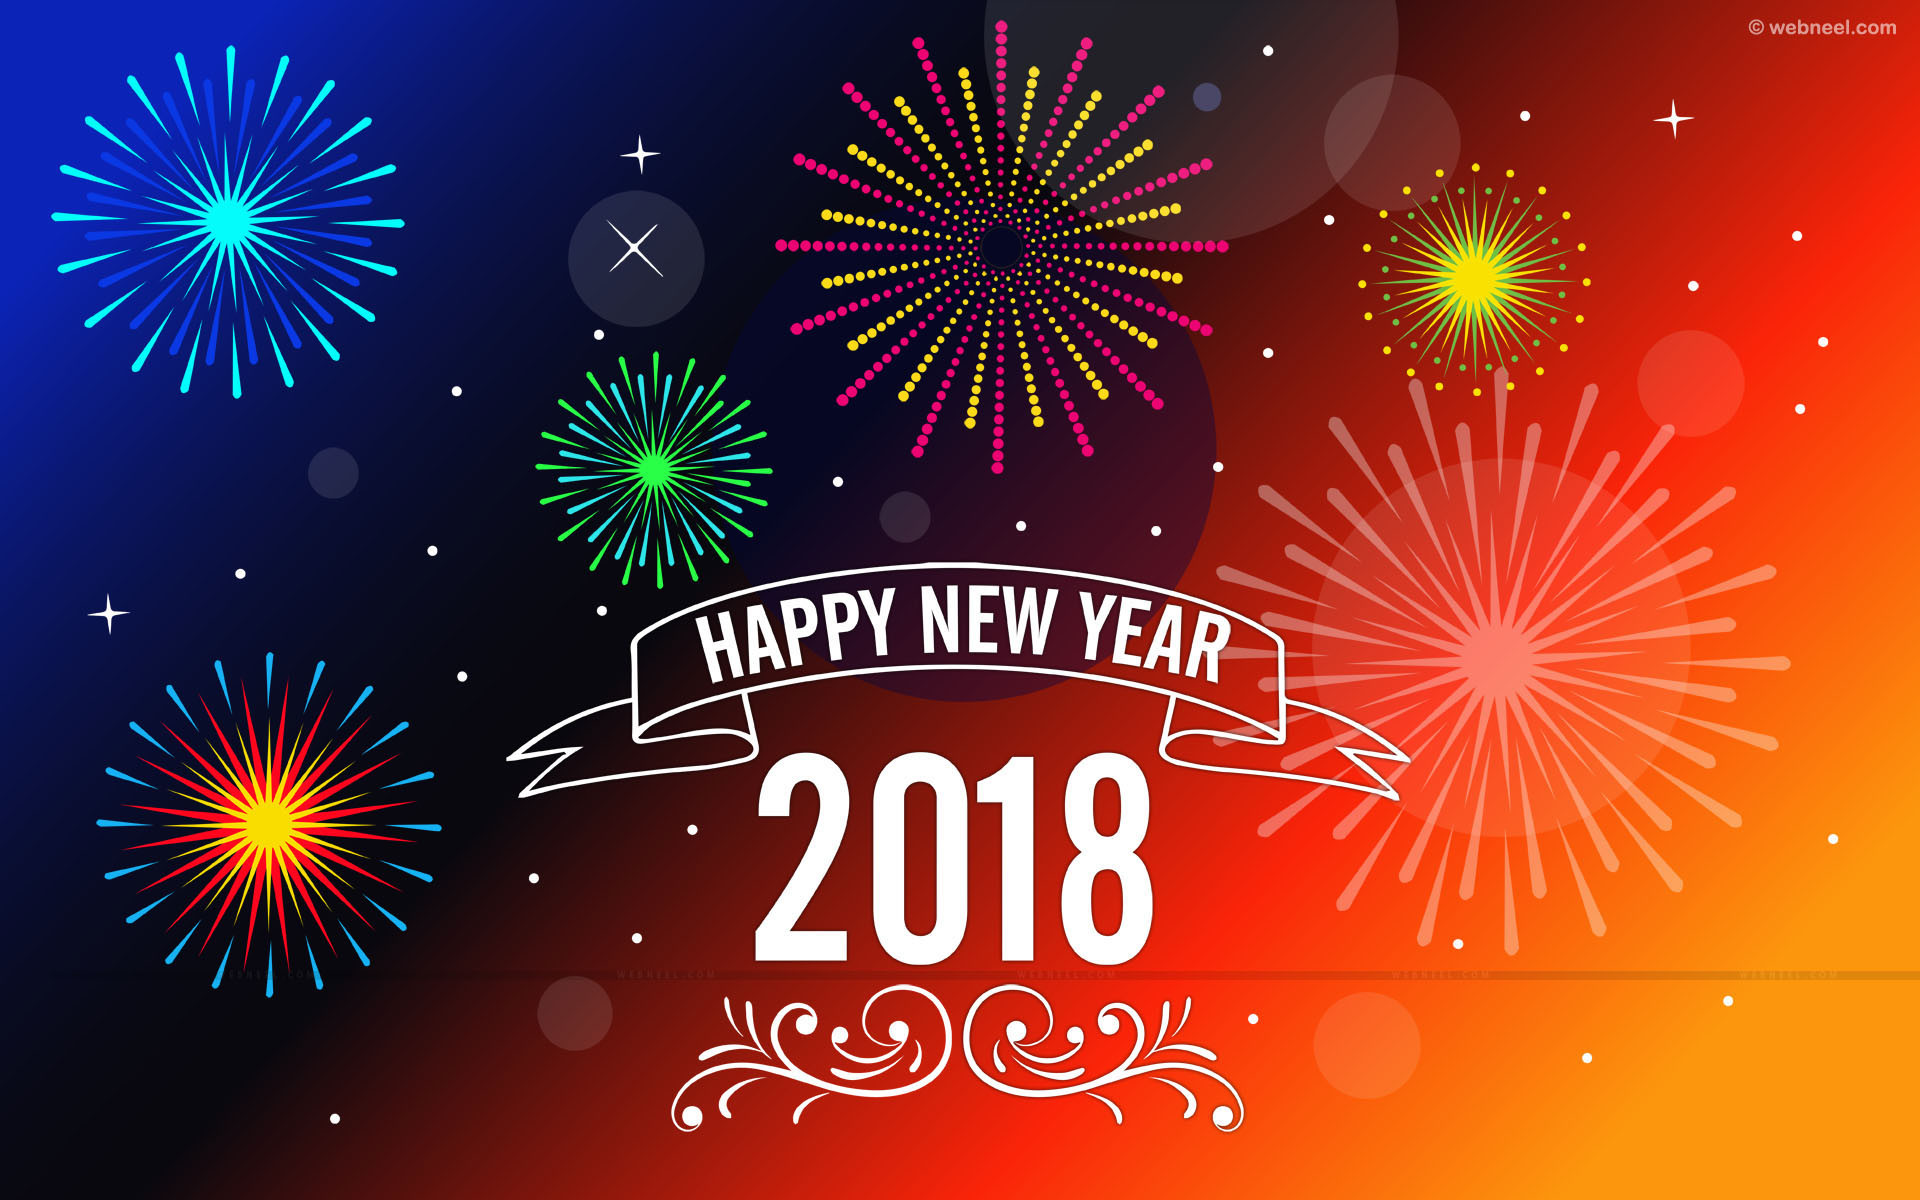 Wallpaper New Year 2018 (72+ images)